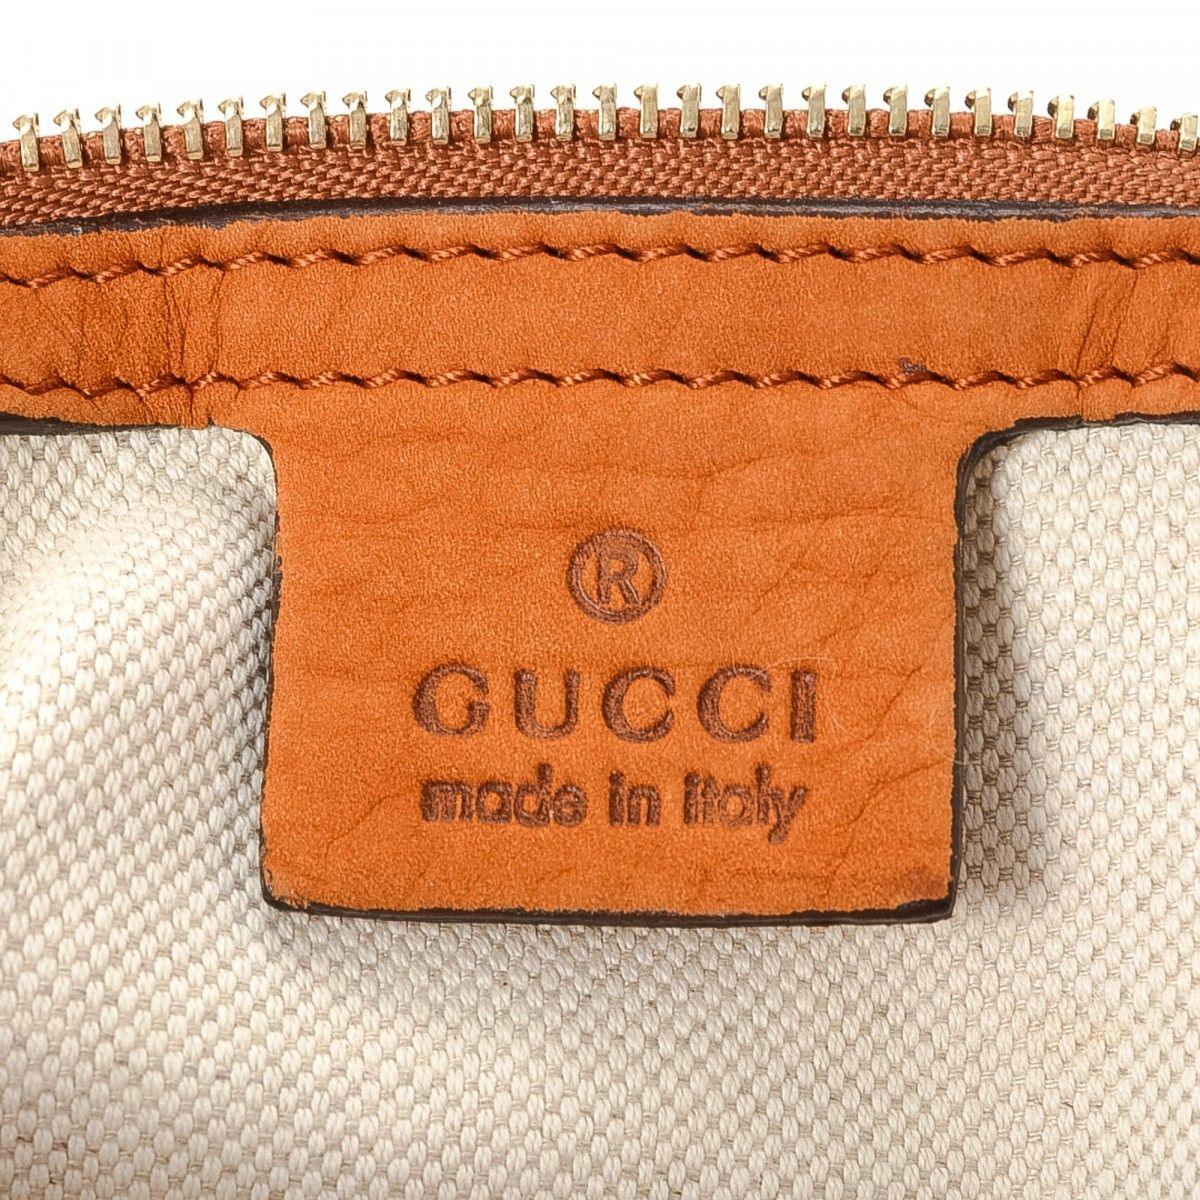 Jackie Shoulder Bag. Free Shipping. The authenticity of this vintage Gucci  Jackie shoulder bag is guaranteed by LXRandCo. This lovely purse comes in  orange ... f3ec9be702